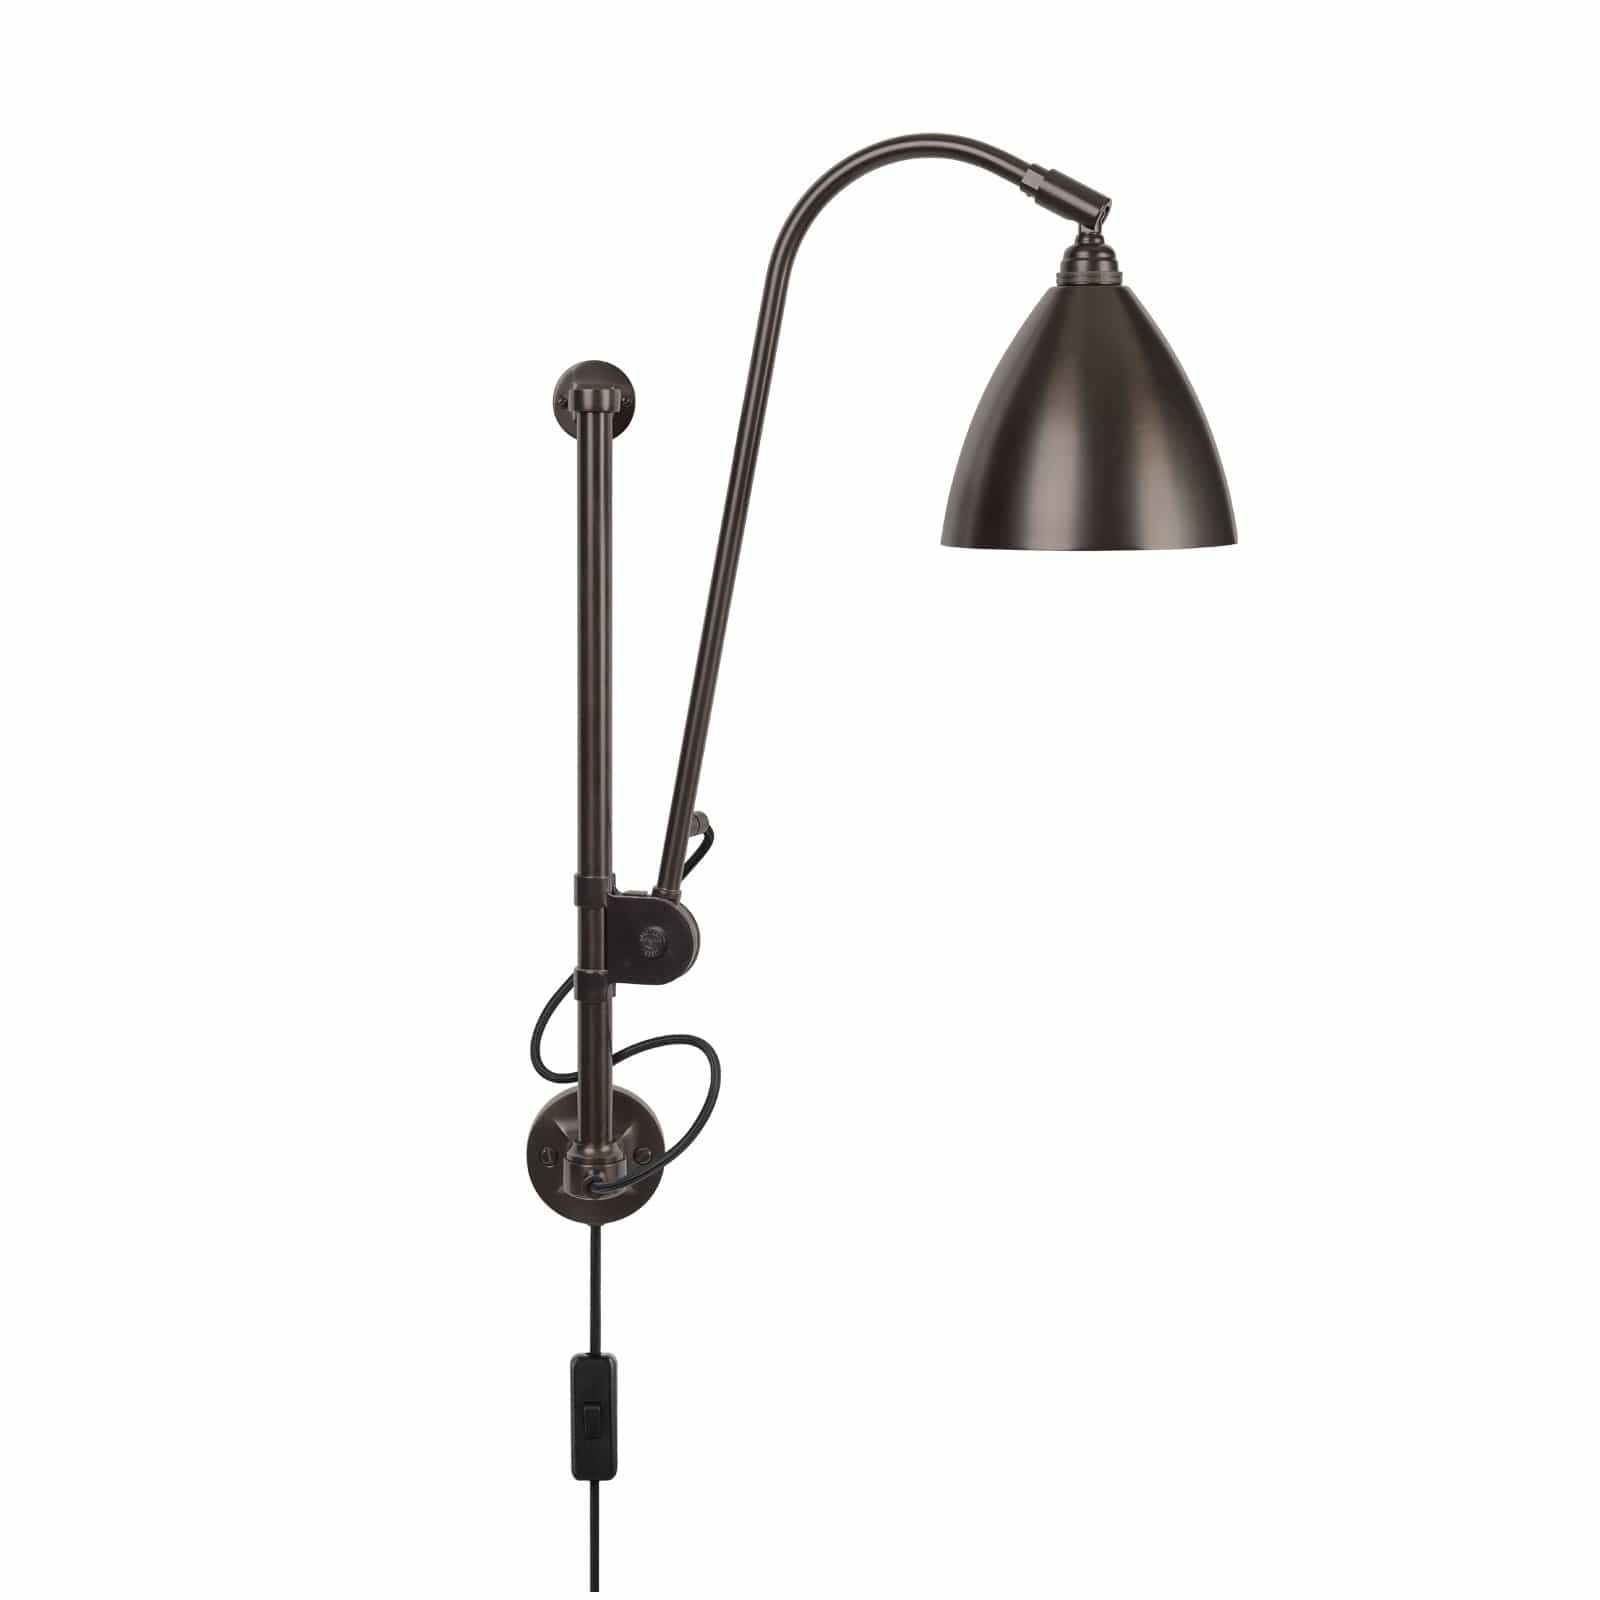 Gubi Lighting Black Brass / Black Brass BL5 Wall Lamp